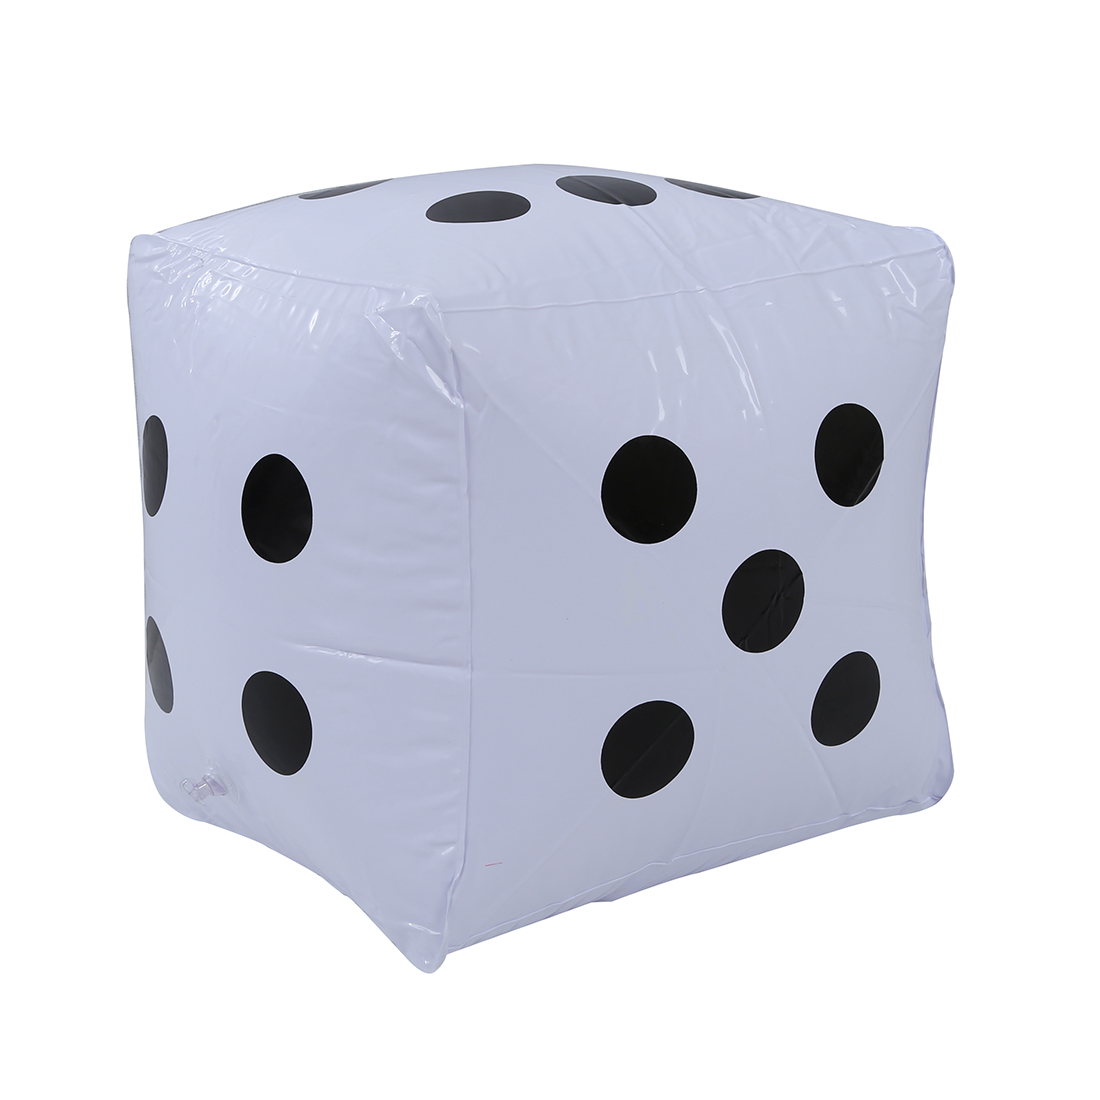 2pcs Big Inflatable Dice Pool Toy Party Favours---White